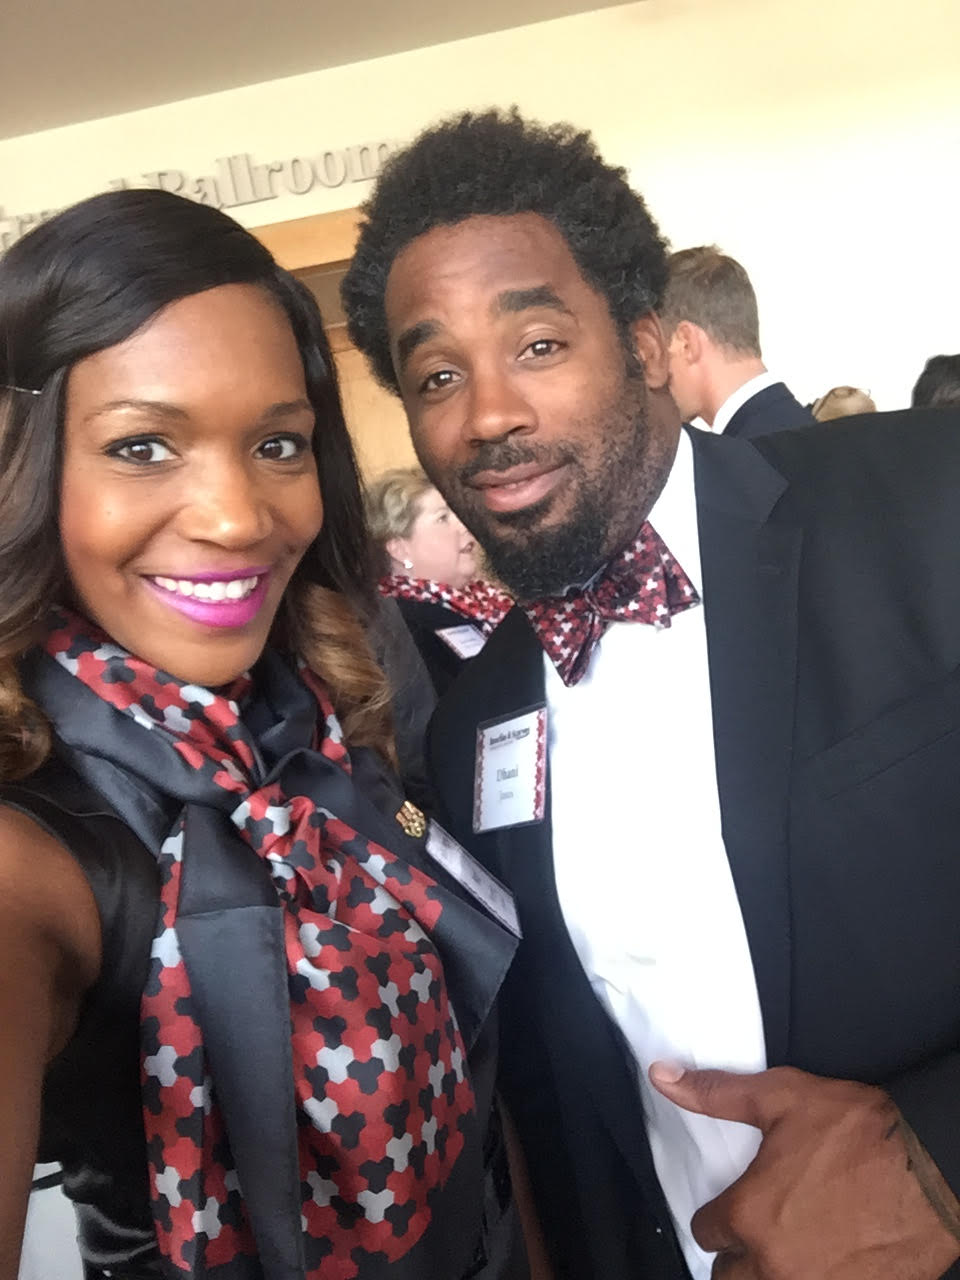 University of Cincinnati Bowtie & Scarves For Scholarships